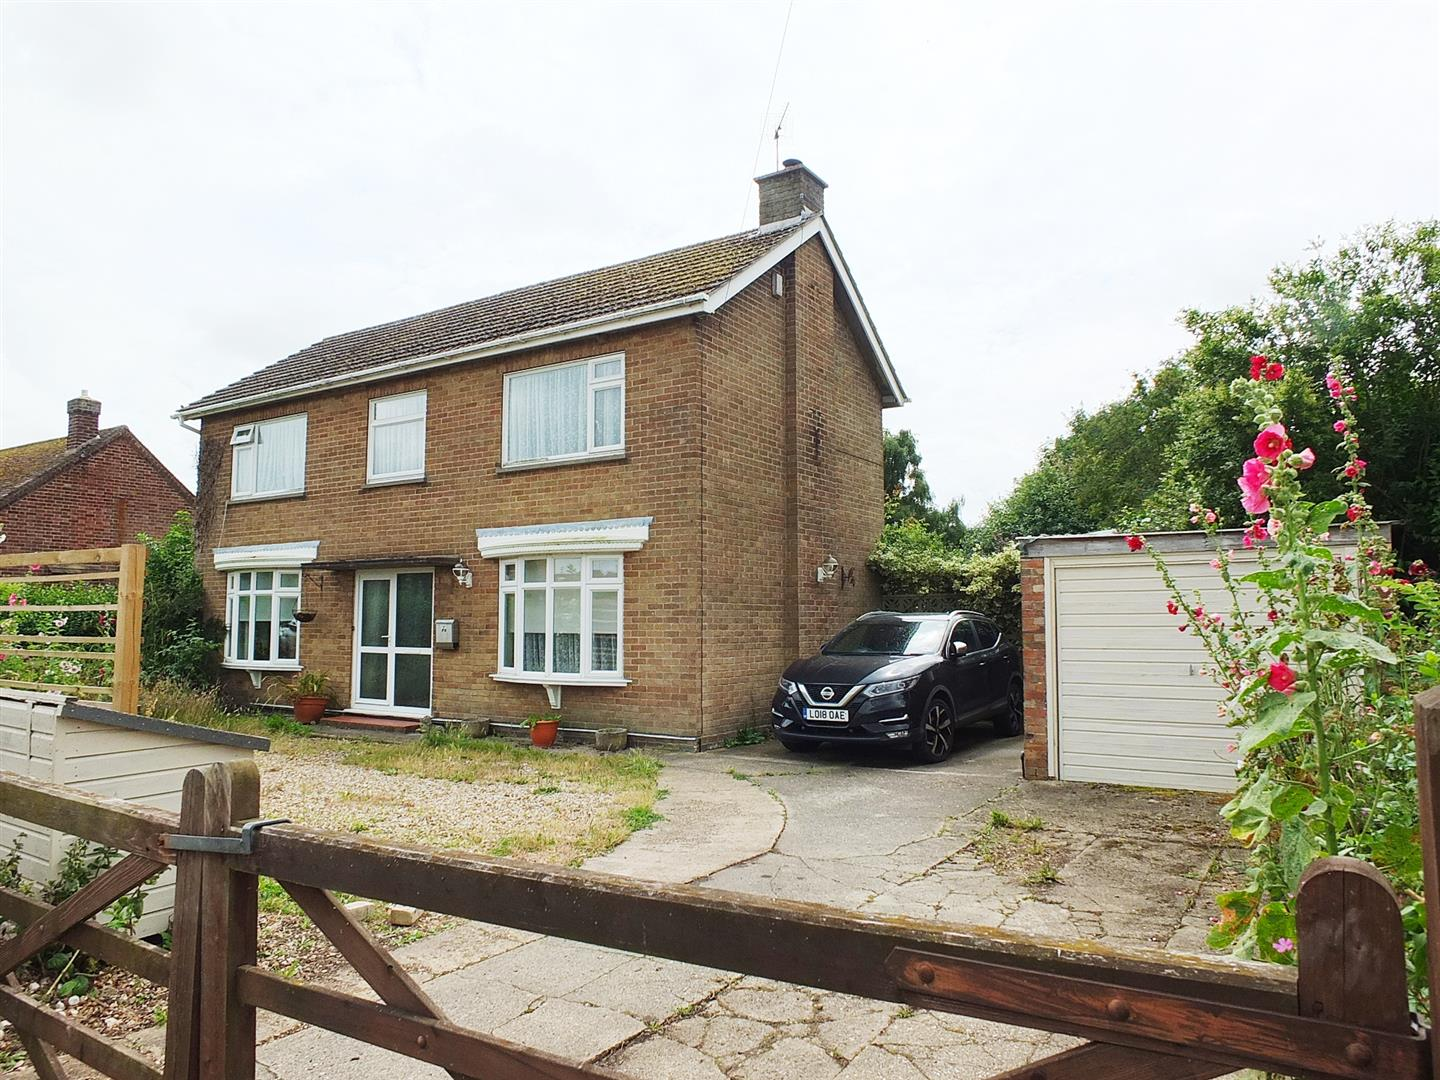 3 bed detached house for sale in Station Road, Wisbech, PE13